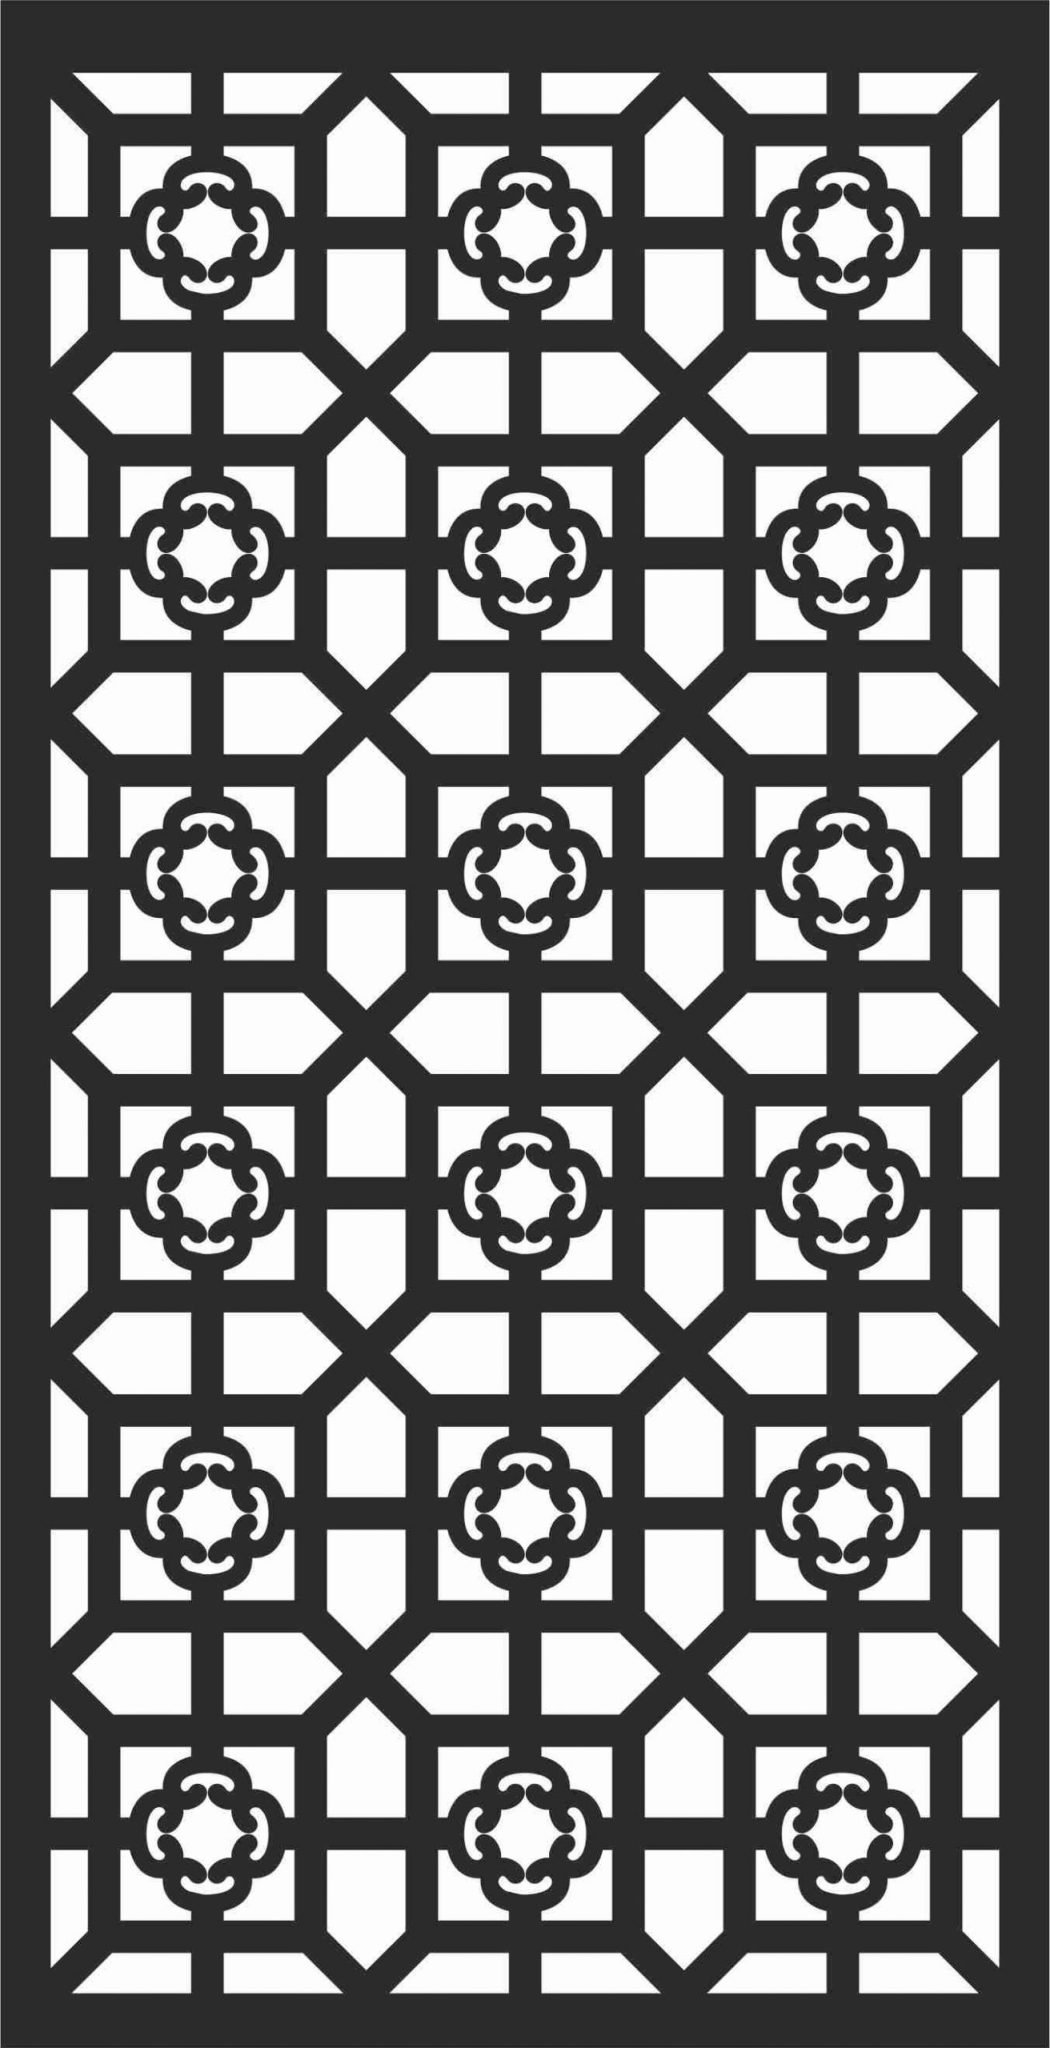 Decorative Screen Patterns For Laser Cutting 95 Free DXF File